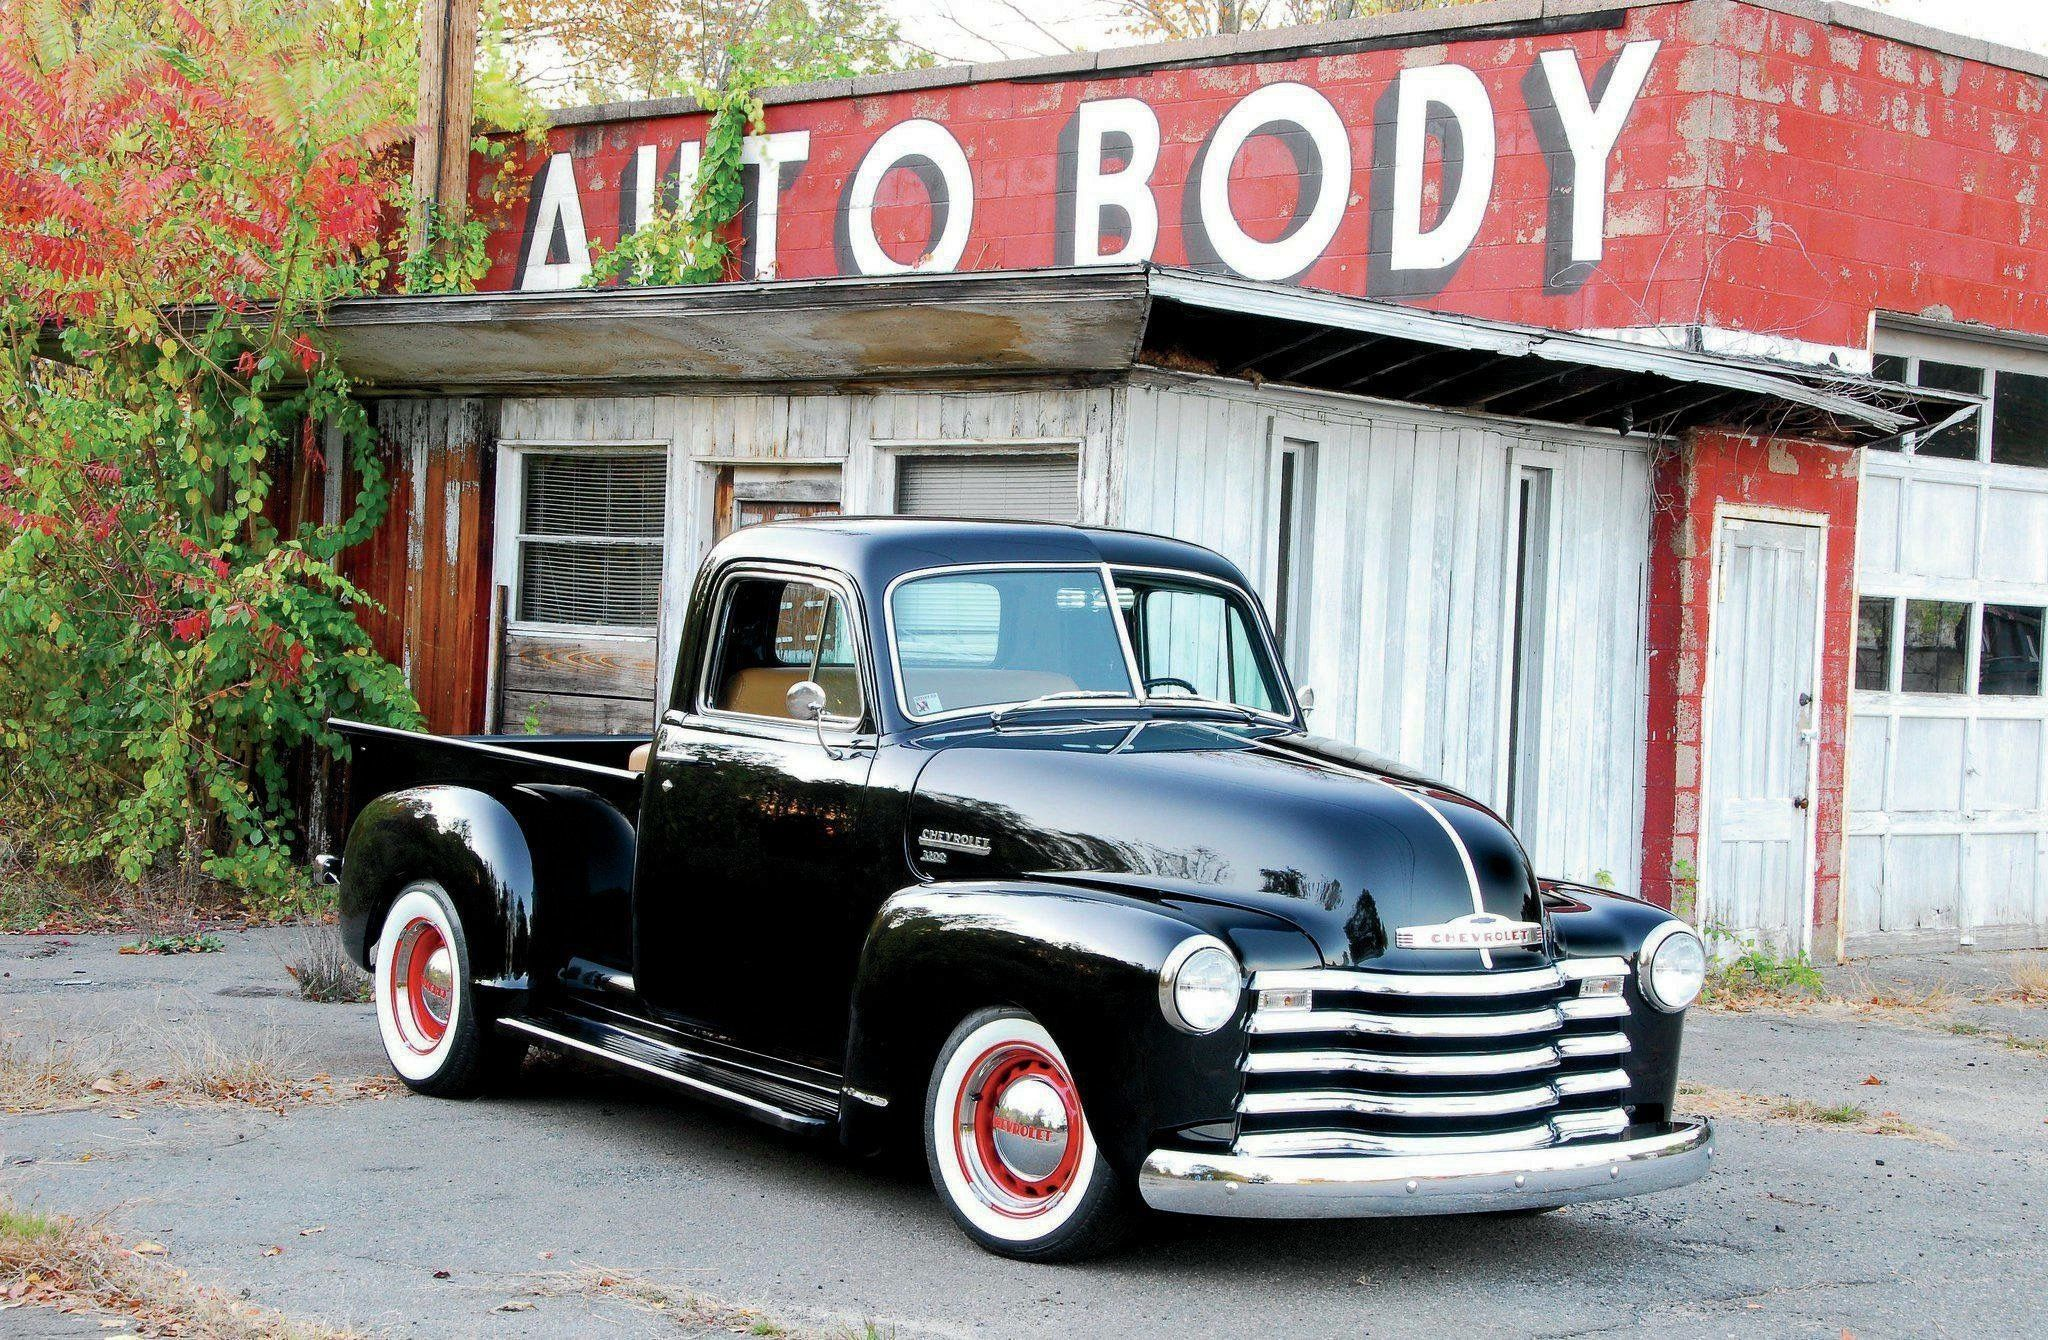 Pin by Terry Williamson on Old Classic trucks | Pinterest | Classic ...